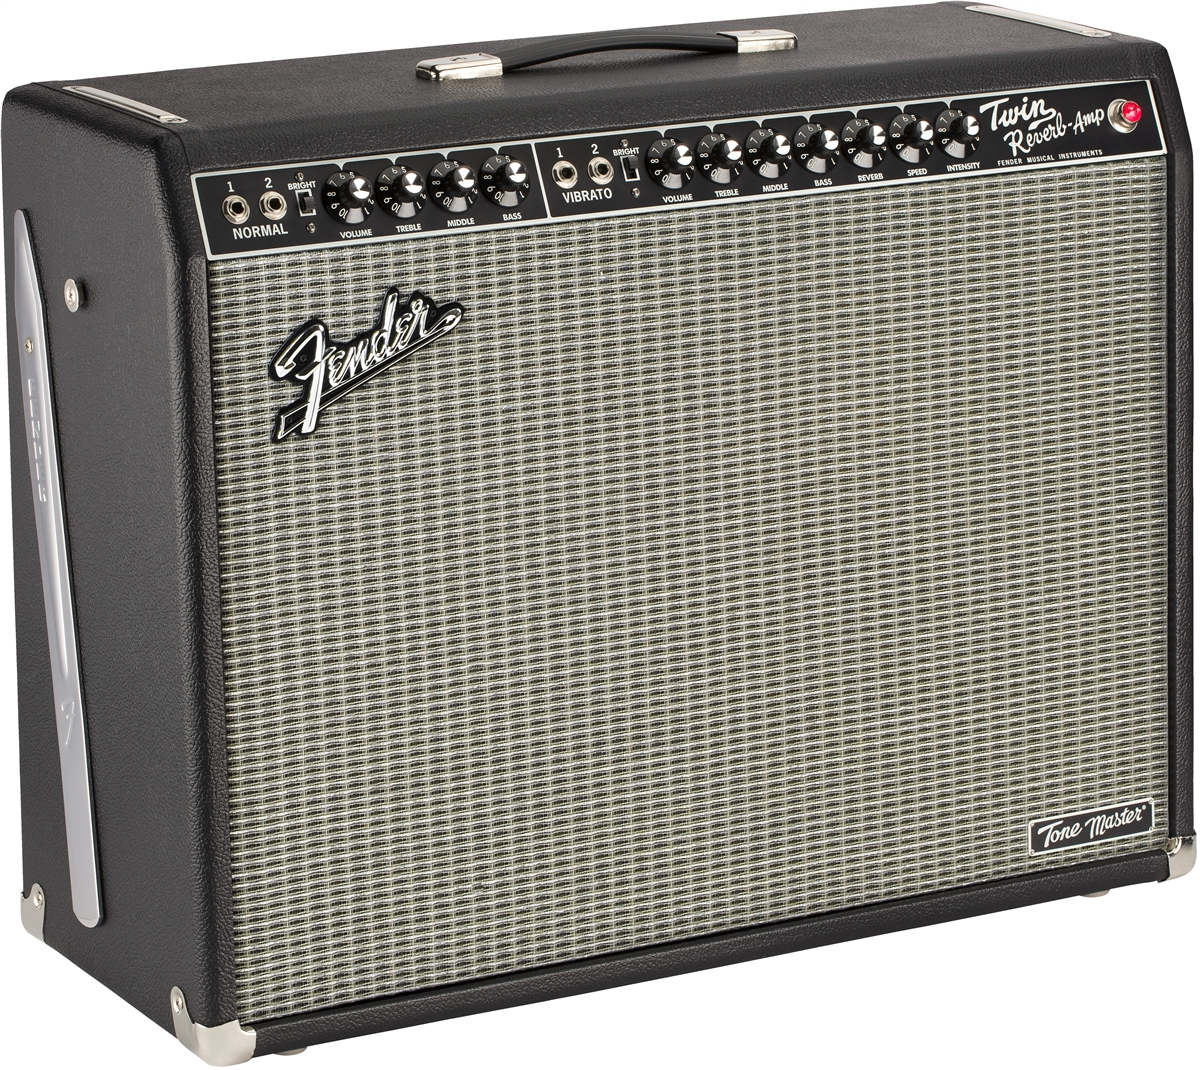 Summer NAMM 2019: Fender Announces New Tone Master Deluxe Reverb and Twin Reverb Digital Amps | Guitarworld